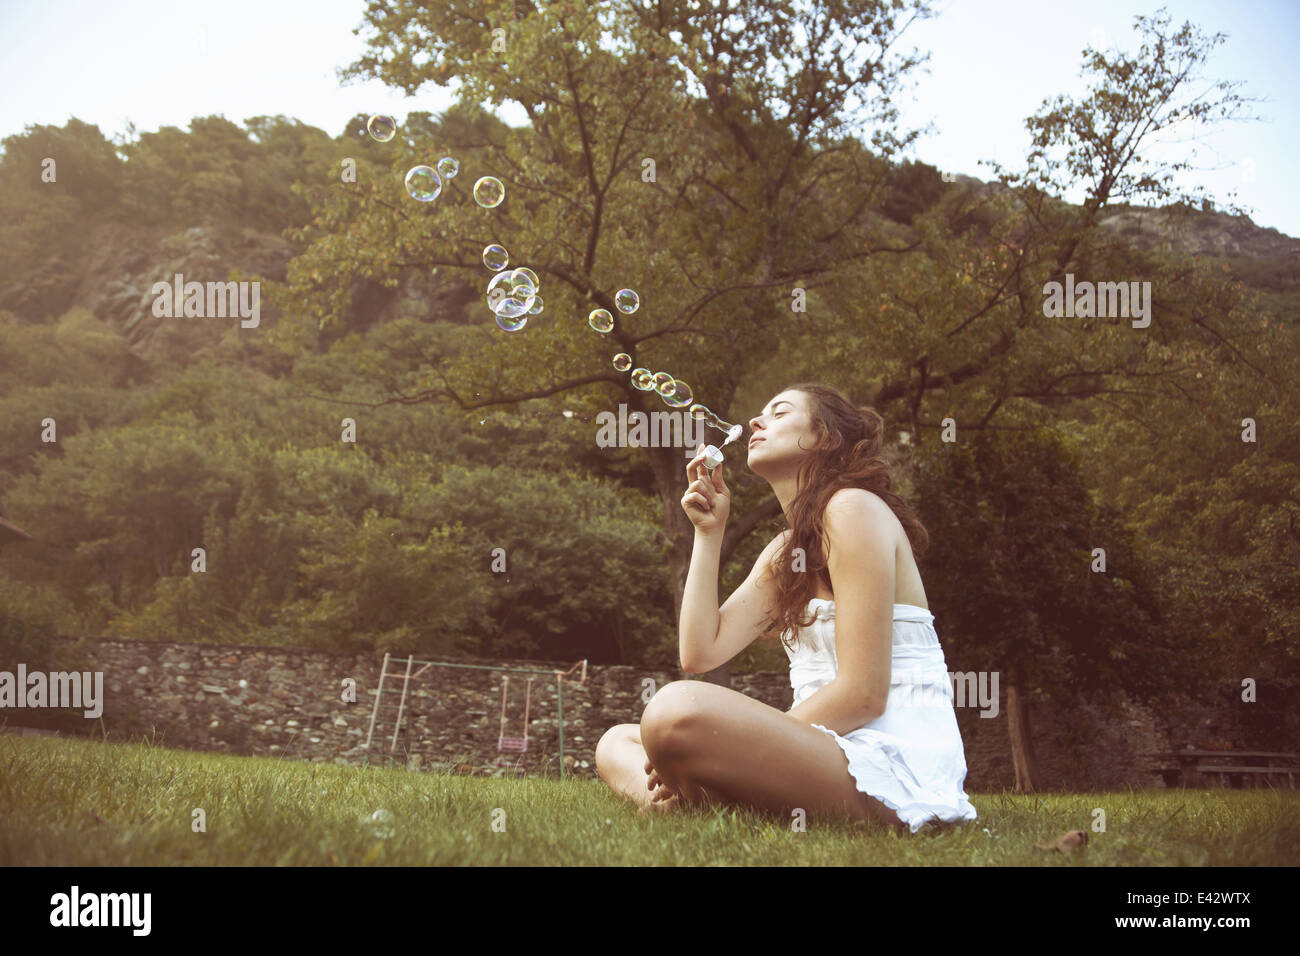 Young woman sitting cross legged in field blowing bubbles - Stock Image